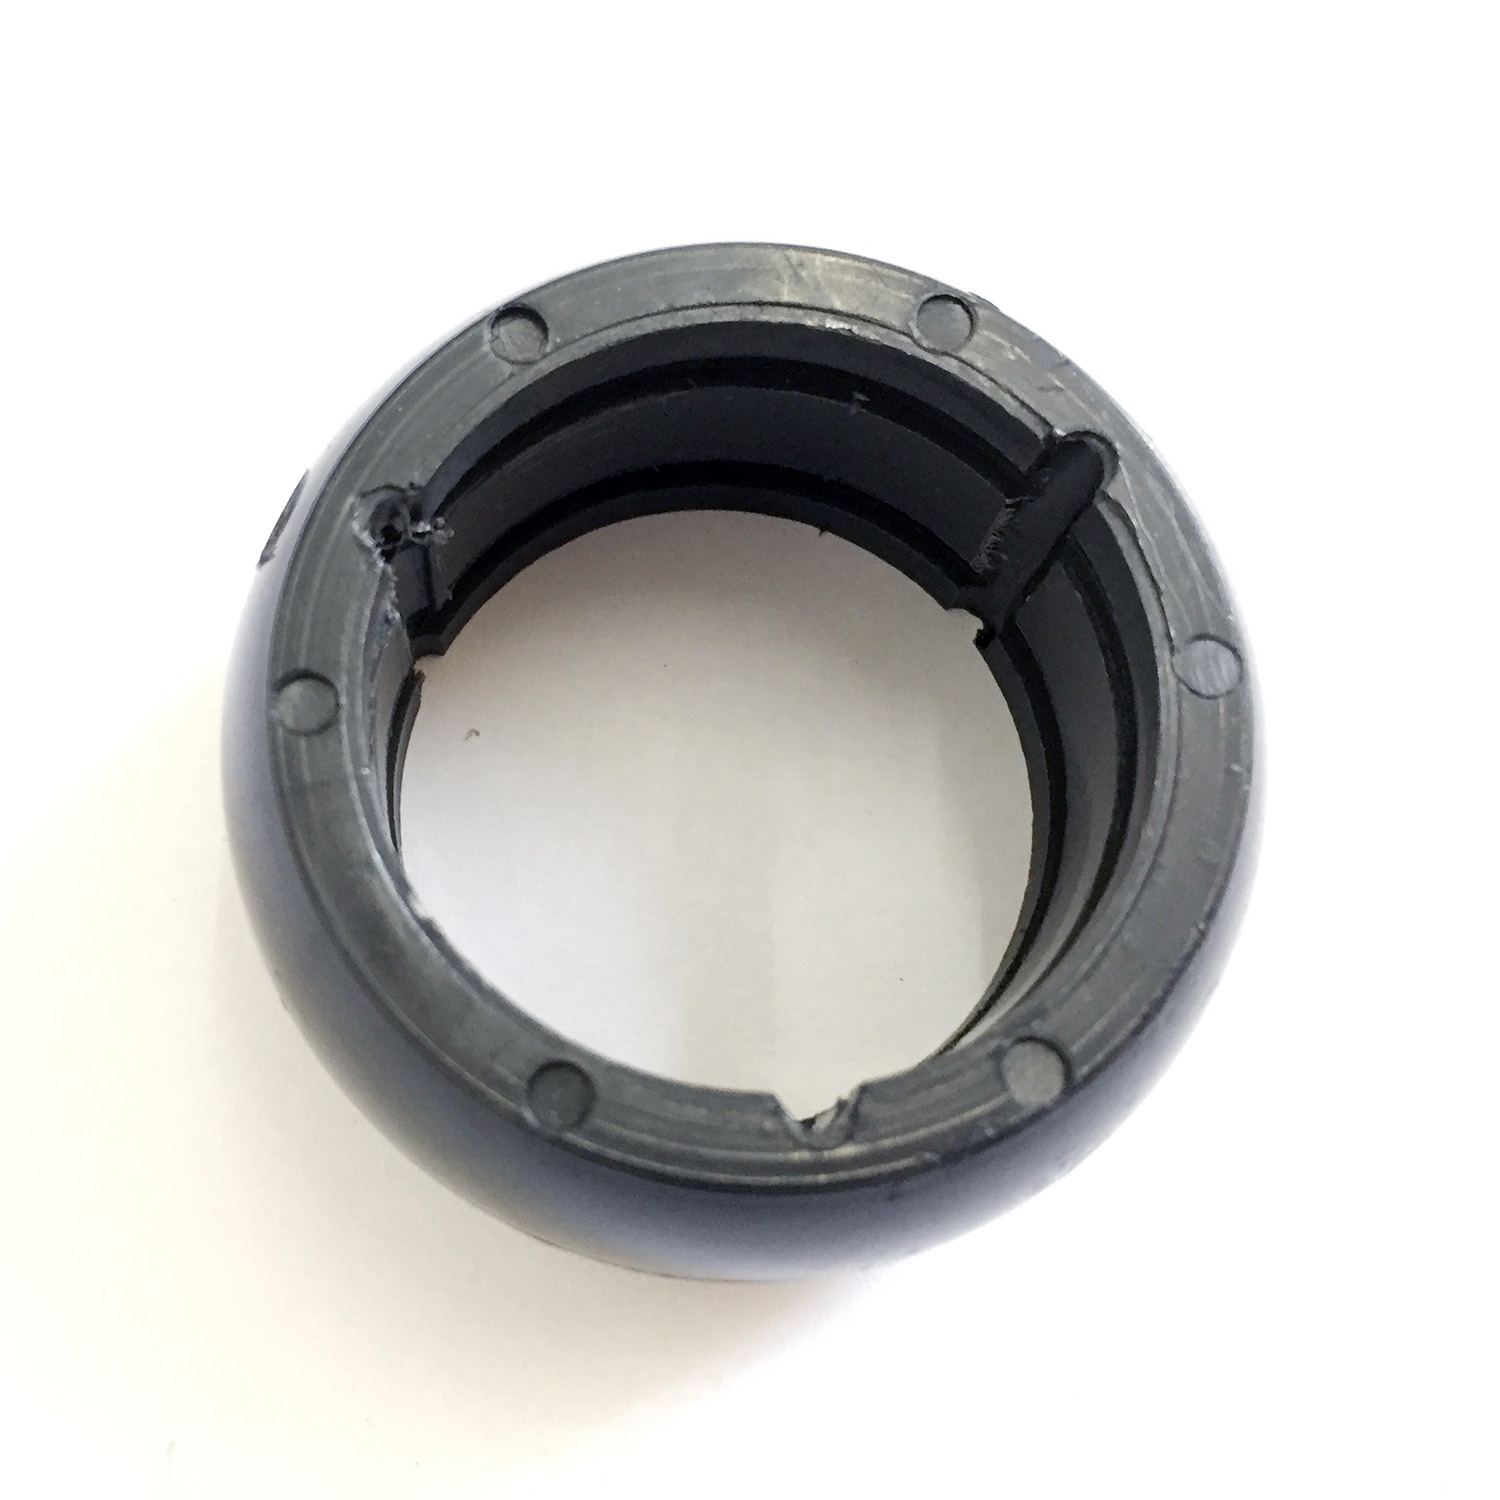 Camshaft Bushing Manufacturers, Camshaft Bushing Factory, Supply Camshaft Bushing